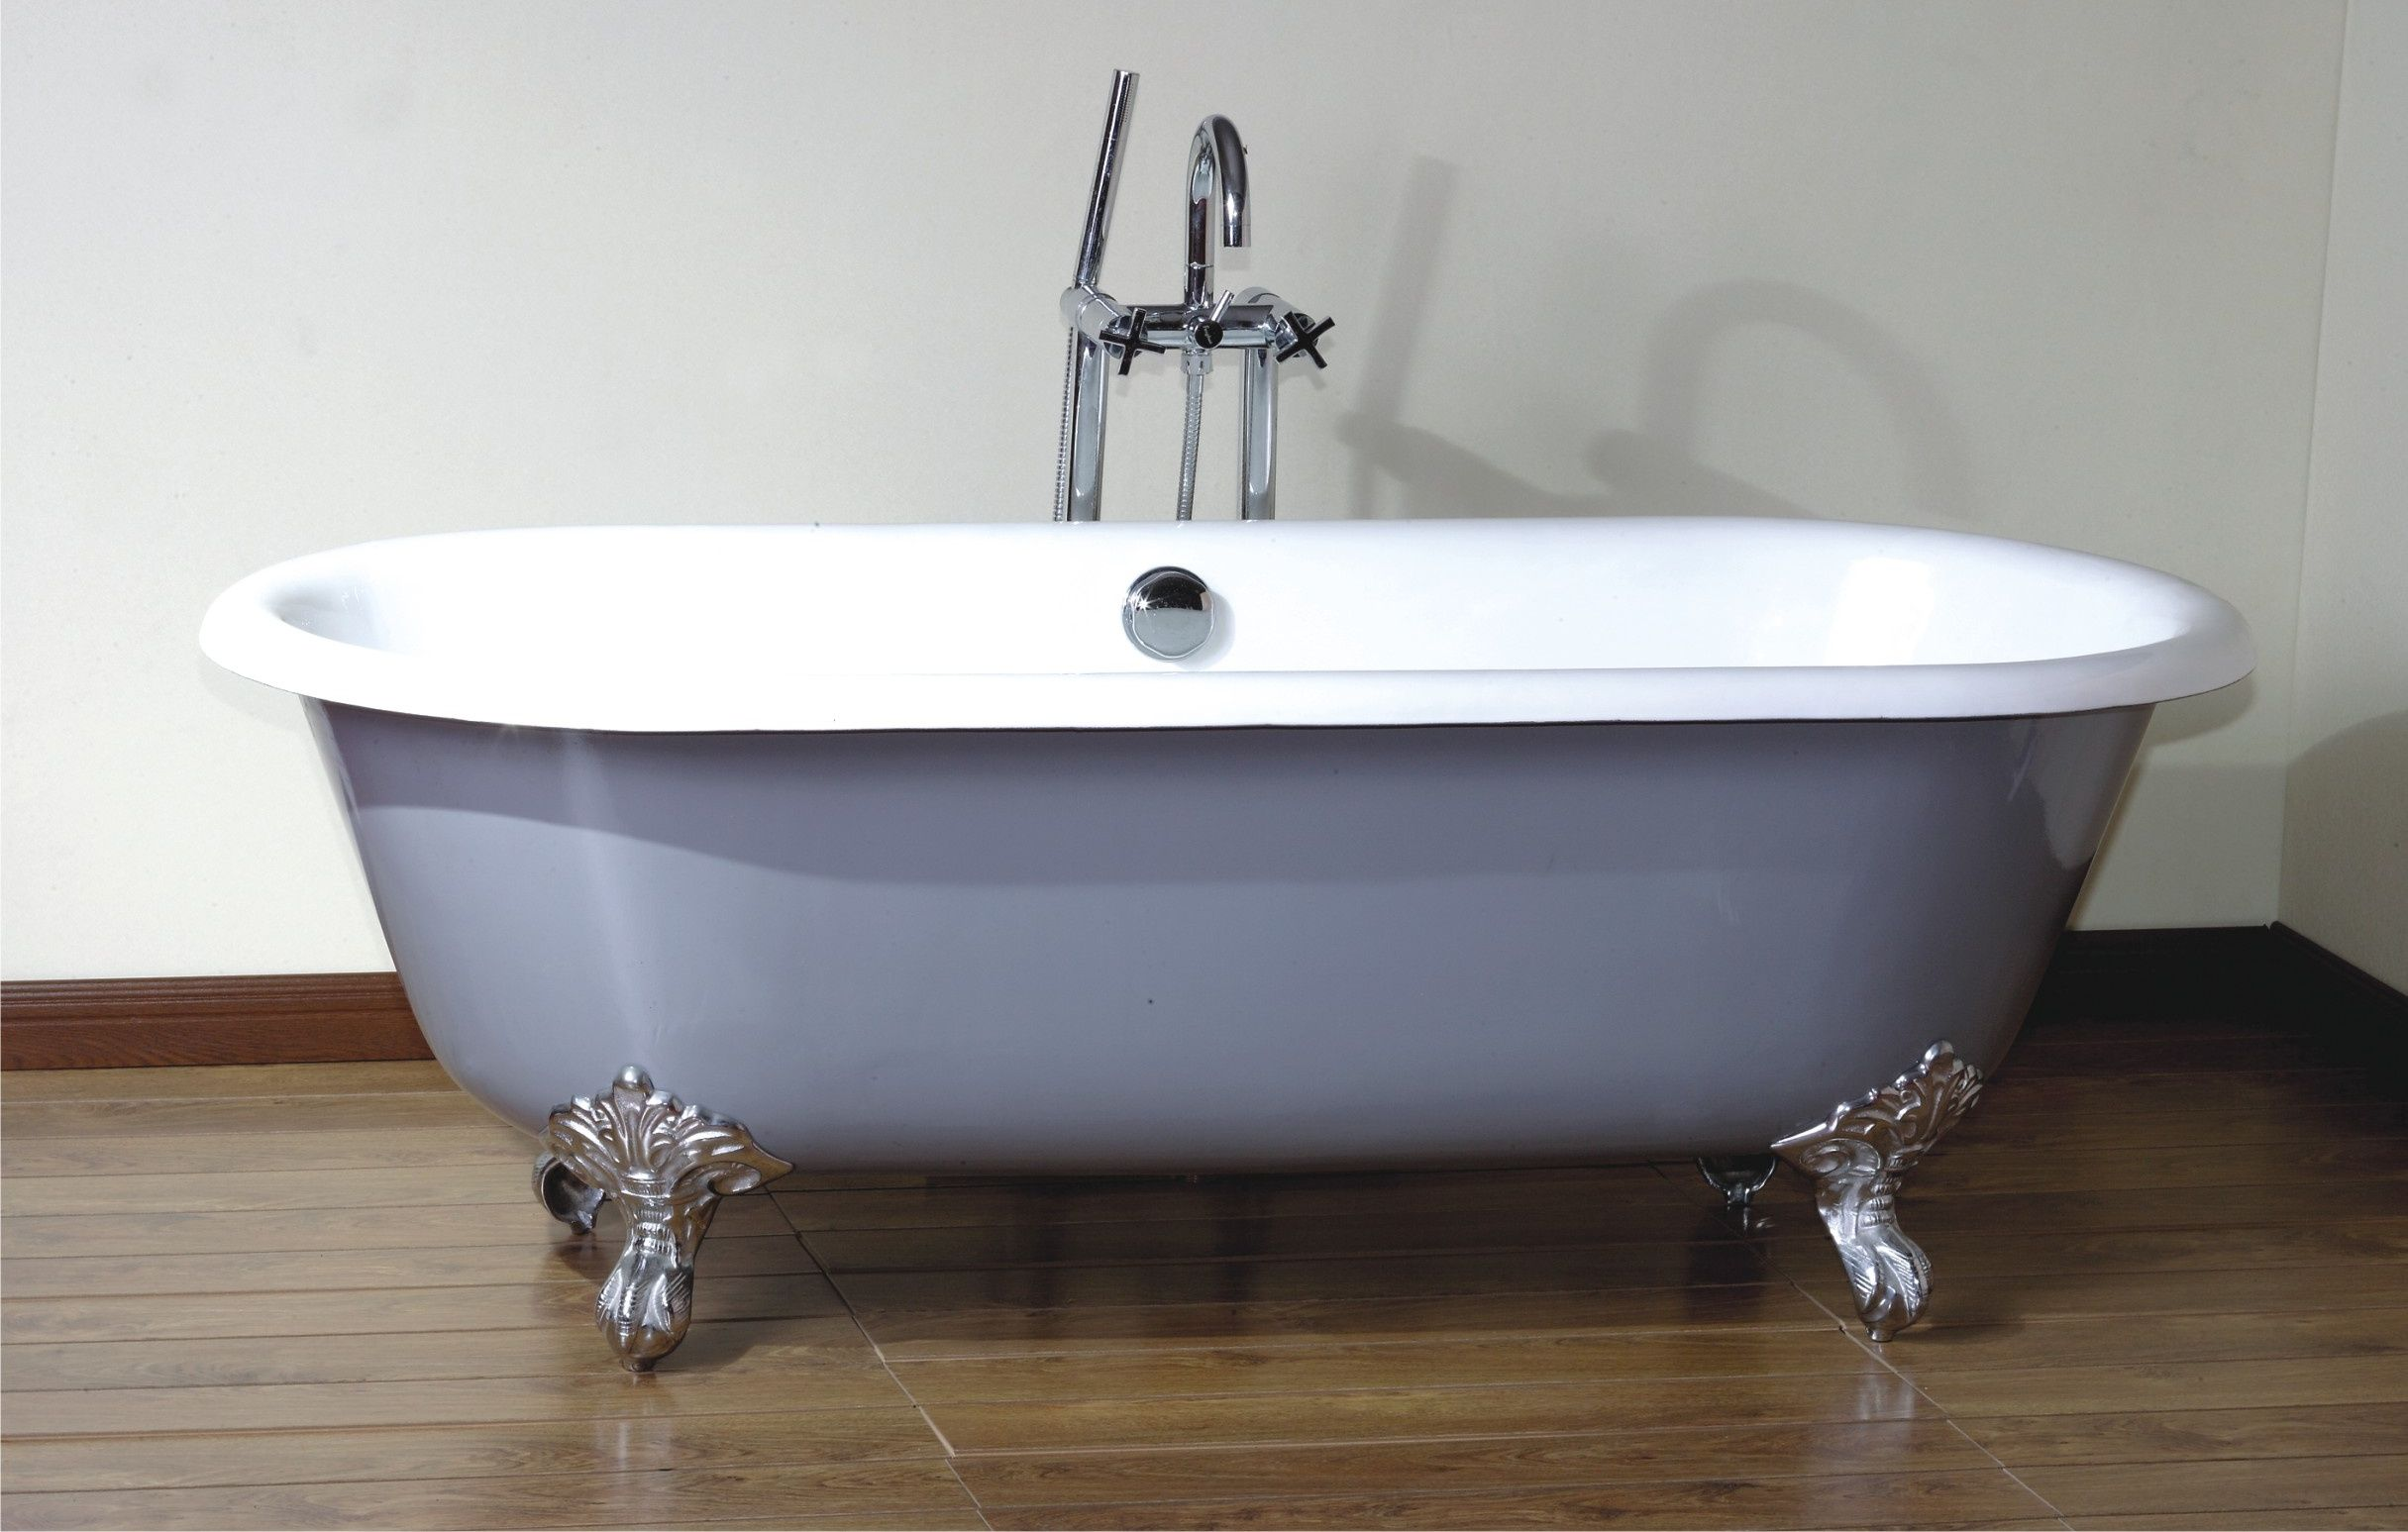 how to drain a hot tub uk